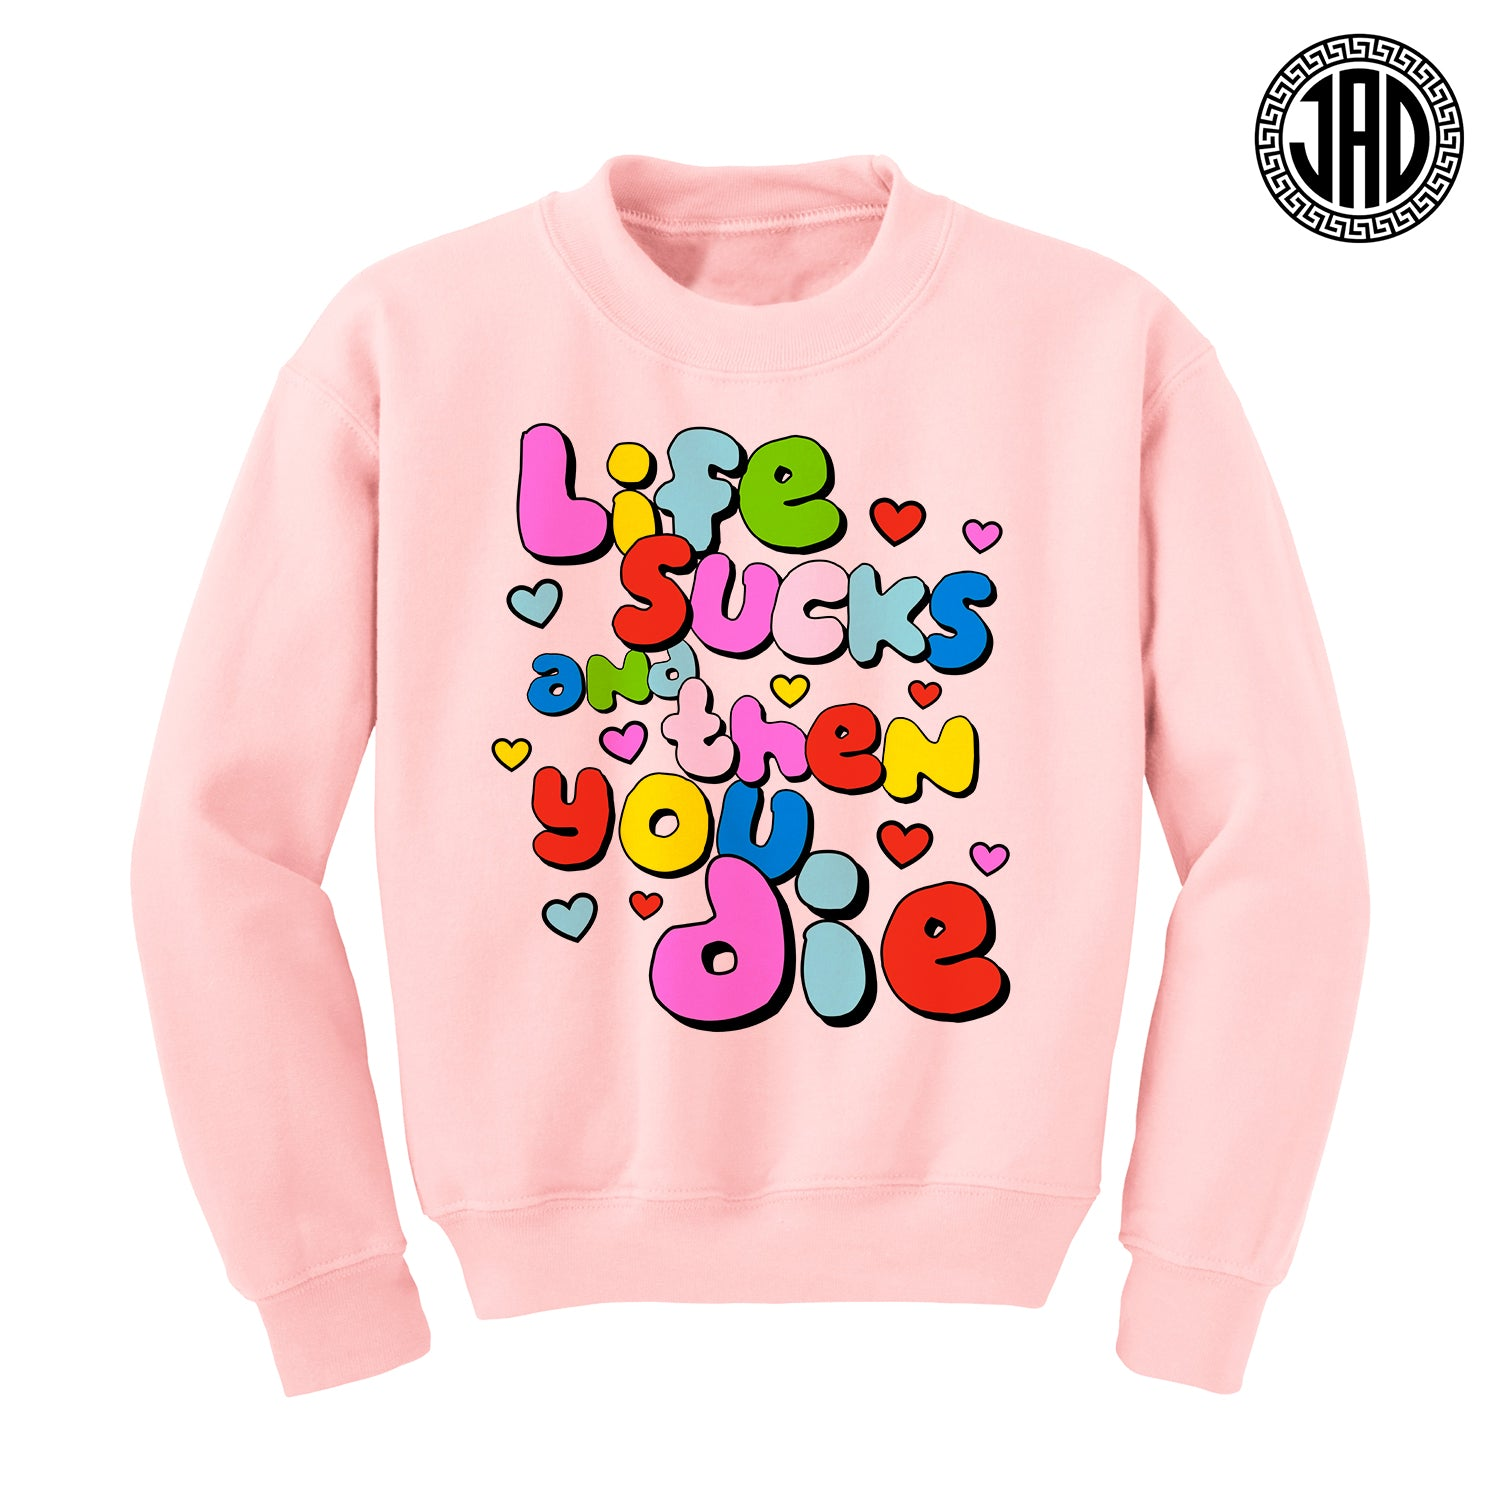 Life Sux - Mens (Unisex) Crewneck Sweater